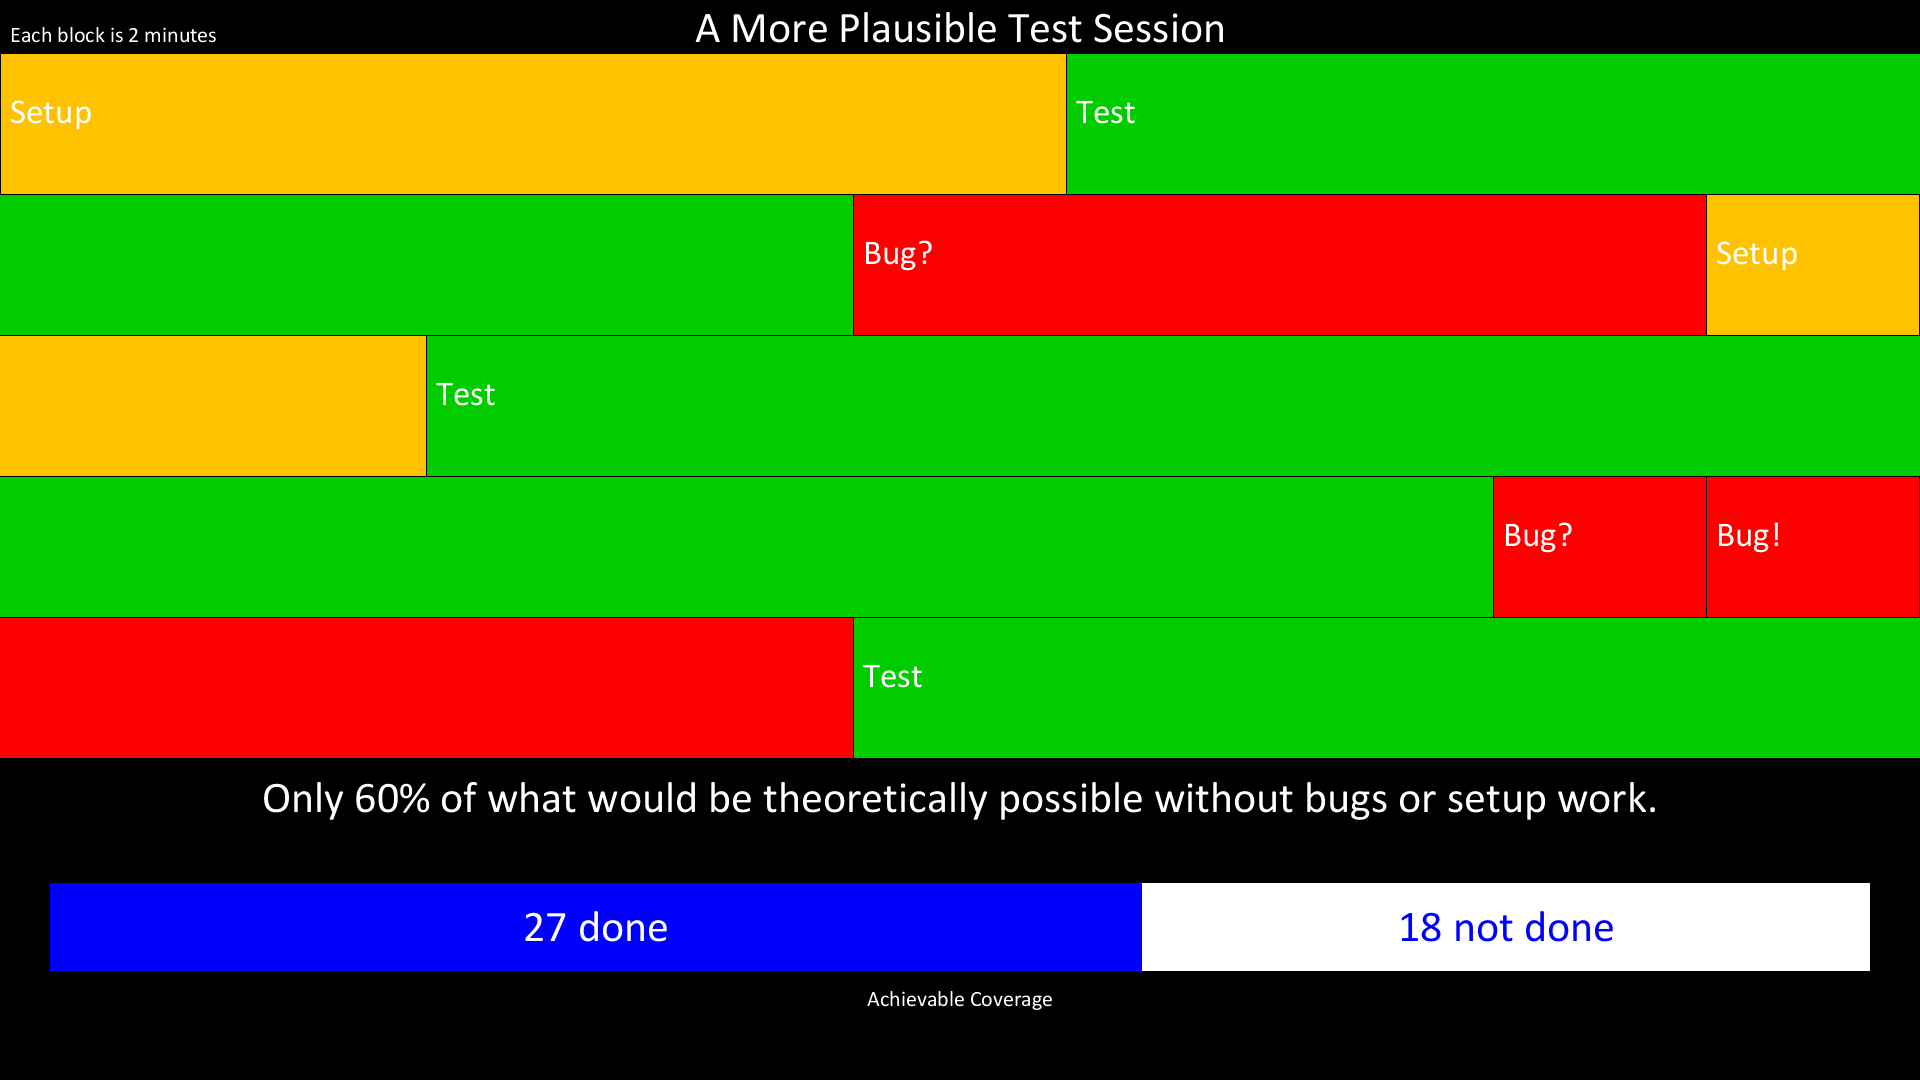 A More Plausible Test Session